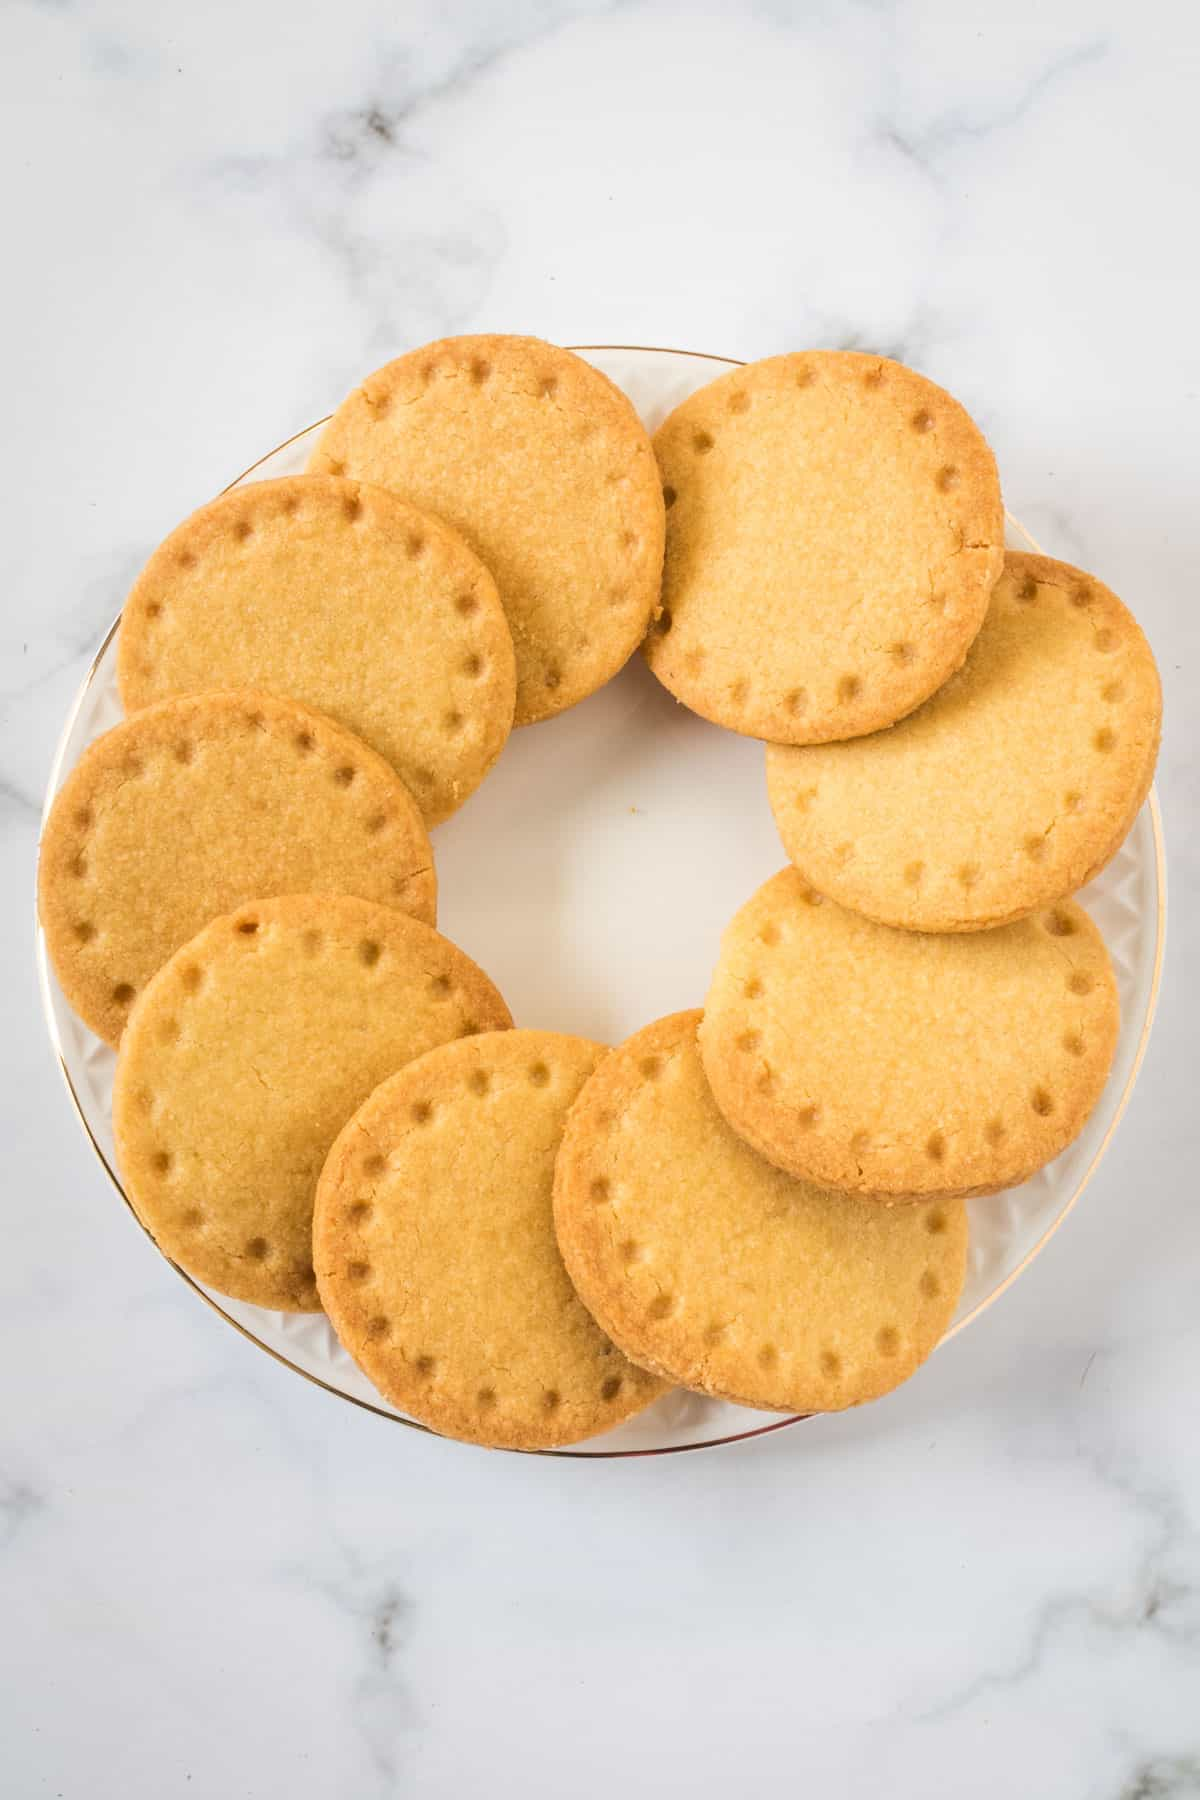 A circle of round cookies on a white plate